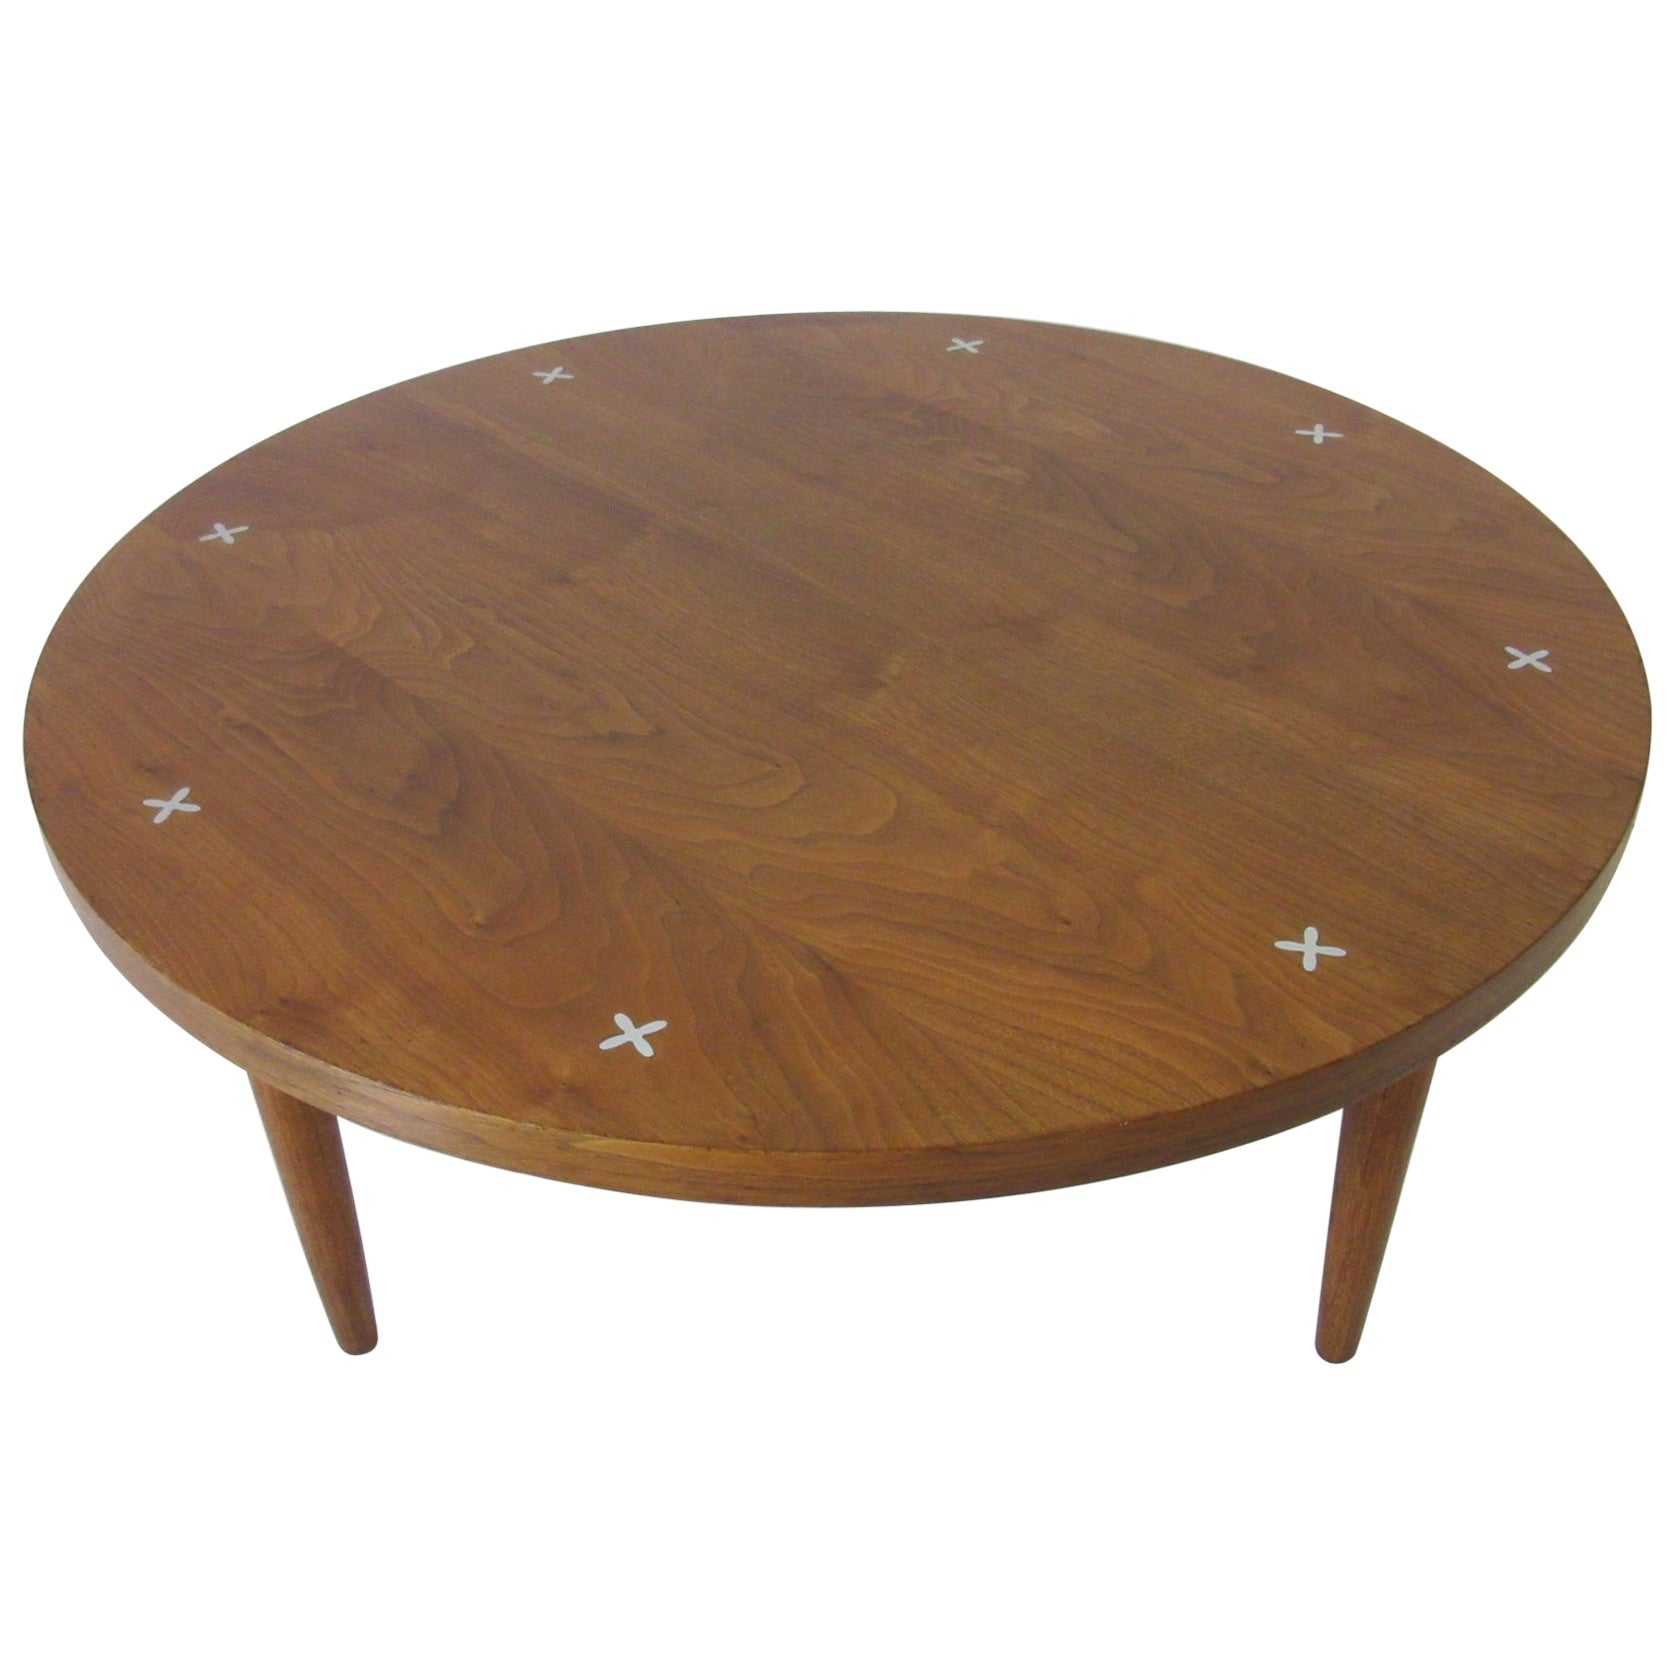 Walnut Coffee Table by Merton Gershun for American of Martinsville